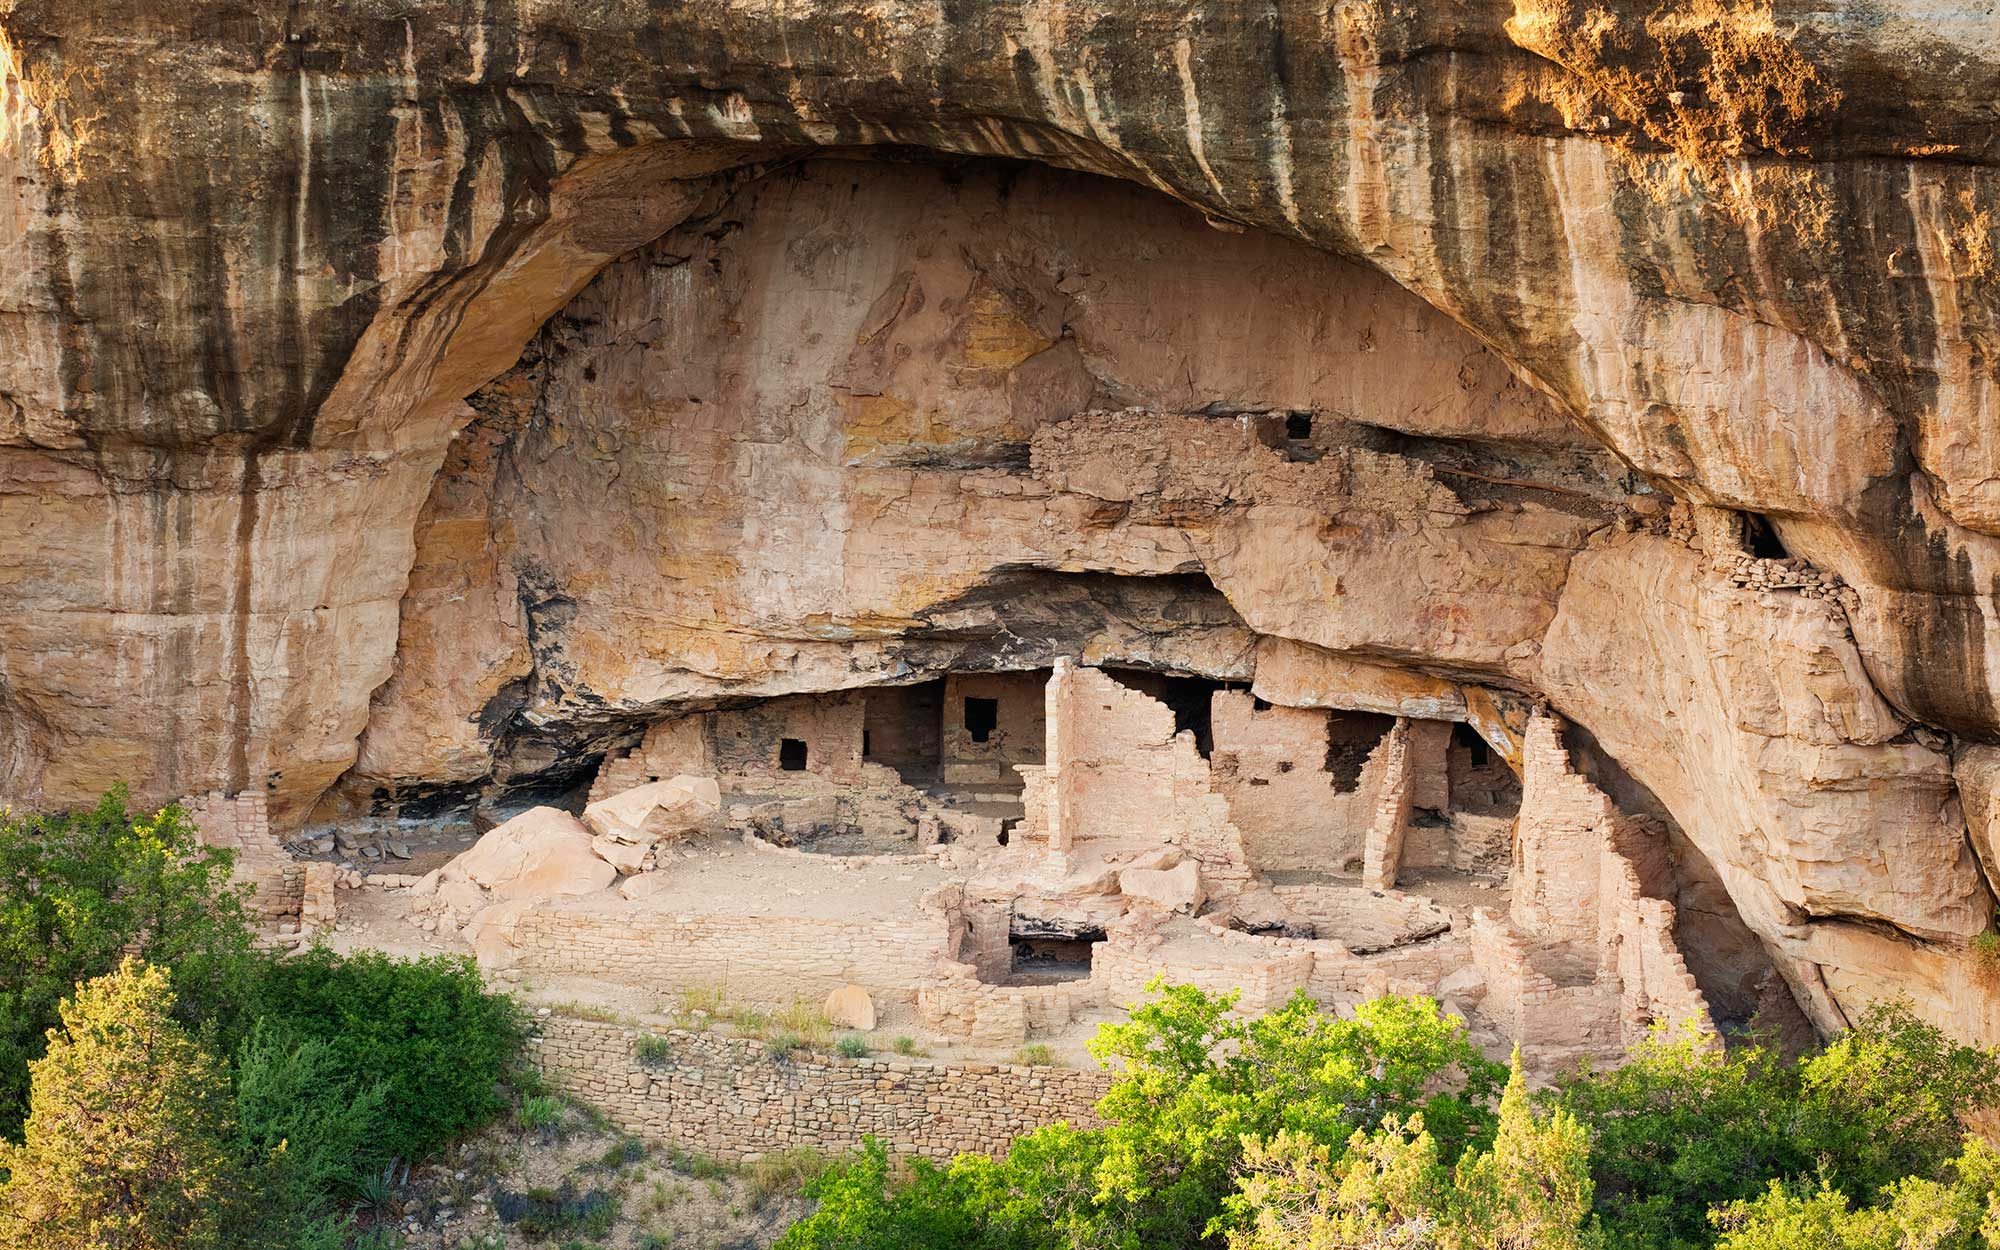 The World's Coolest Caves: Spruce Tree House